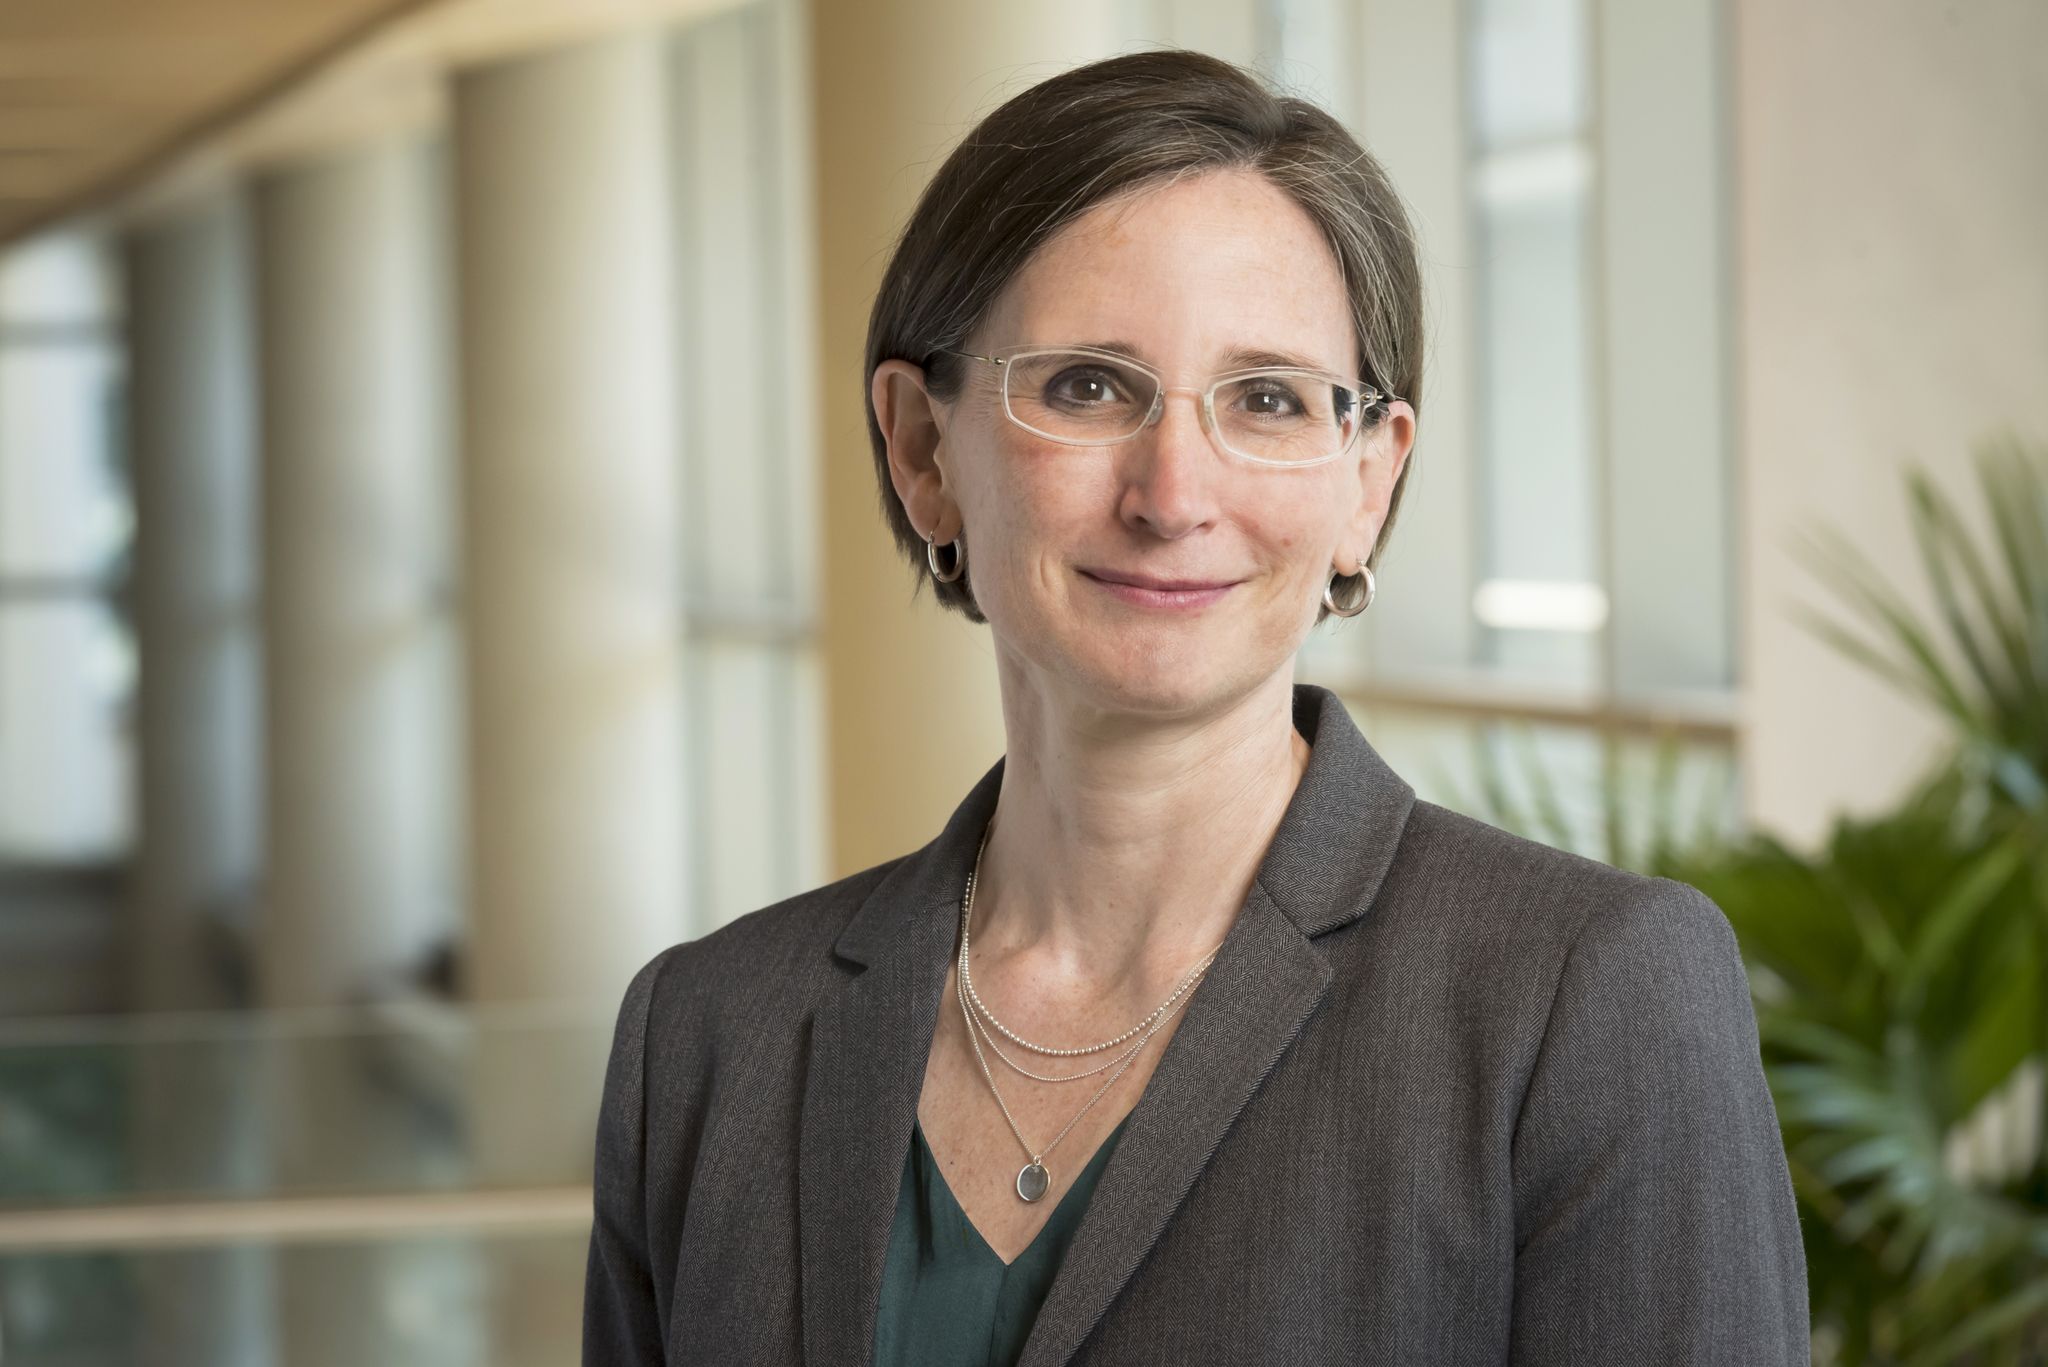 Dr. Toddi Steelman,Ex-Officio Member - Dr. Toddi Steelman was named as the Stanback Dean for the Nicholas School of the Environment at Duke University in July 2018. Prior to that she served five years (2012-2017) as the first permanent Executive Director (Dean) at the School of Environment and Sustainability University of Saskatchewan, Saskatoon, Canada. Dr. Steelman also served 11 years on the faculty in the Department of Forestry and Environmental Resources at North Carolina State University (2012-2001) and four years in the Graduate School of Public Affairs at the University of Colorado at Denver (1997-2001). She holds a Ph.D. from Duke University's Nicholas School of Environment, a Master in Public Affairs from Princeton University and a Bachelor of Arts in Political Sciences and International Studies from West Virginia University.